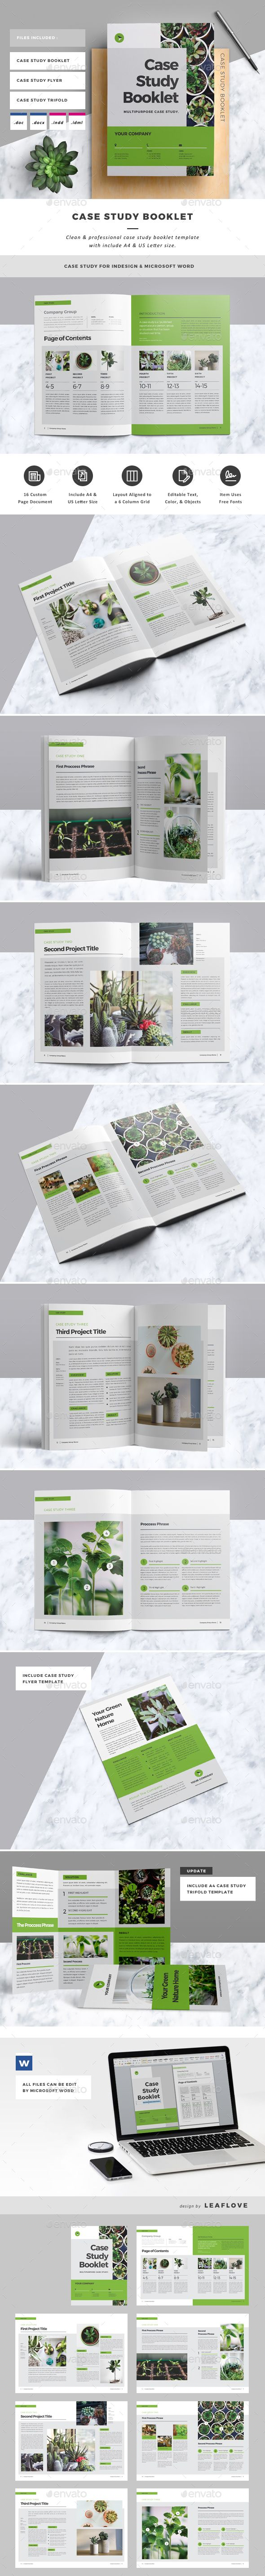 Case Study Booklet | Brochures, Layouts and Brochure template